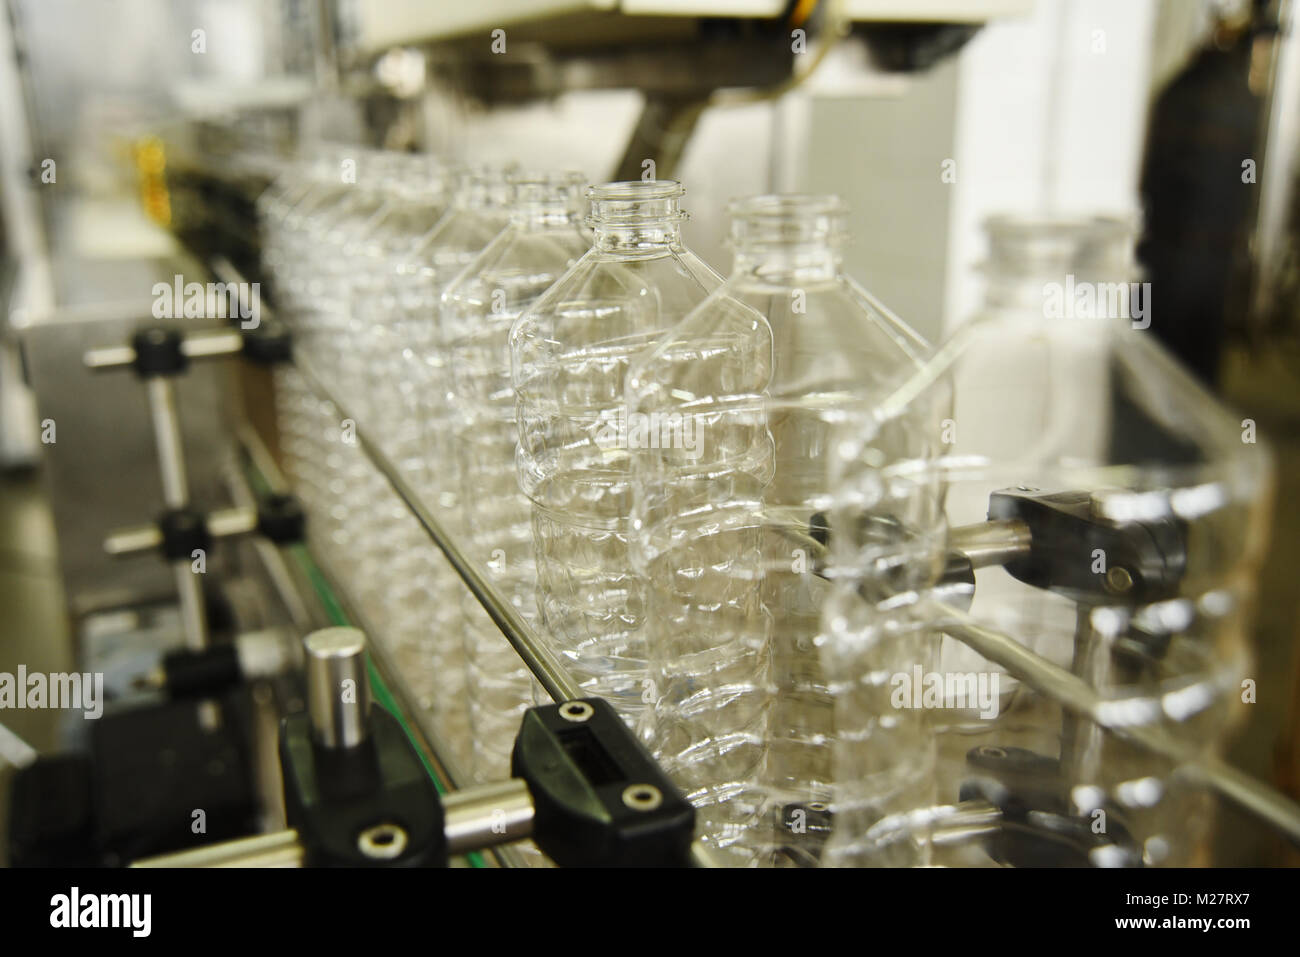 Bottle. Industrial production of PET bottles. Transparent packaging for food products - Stock Image